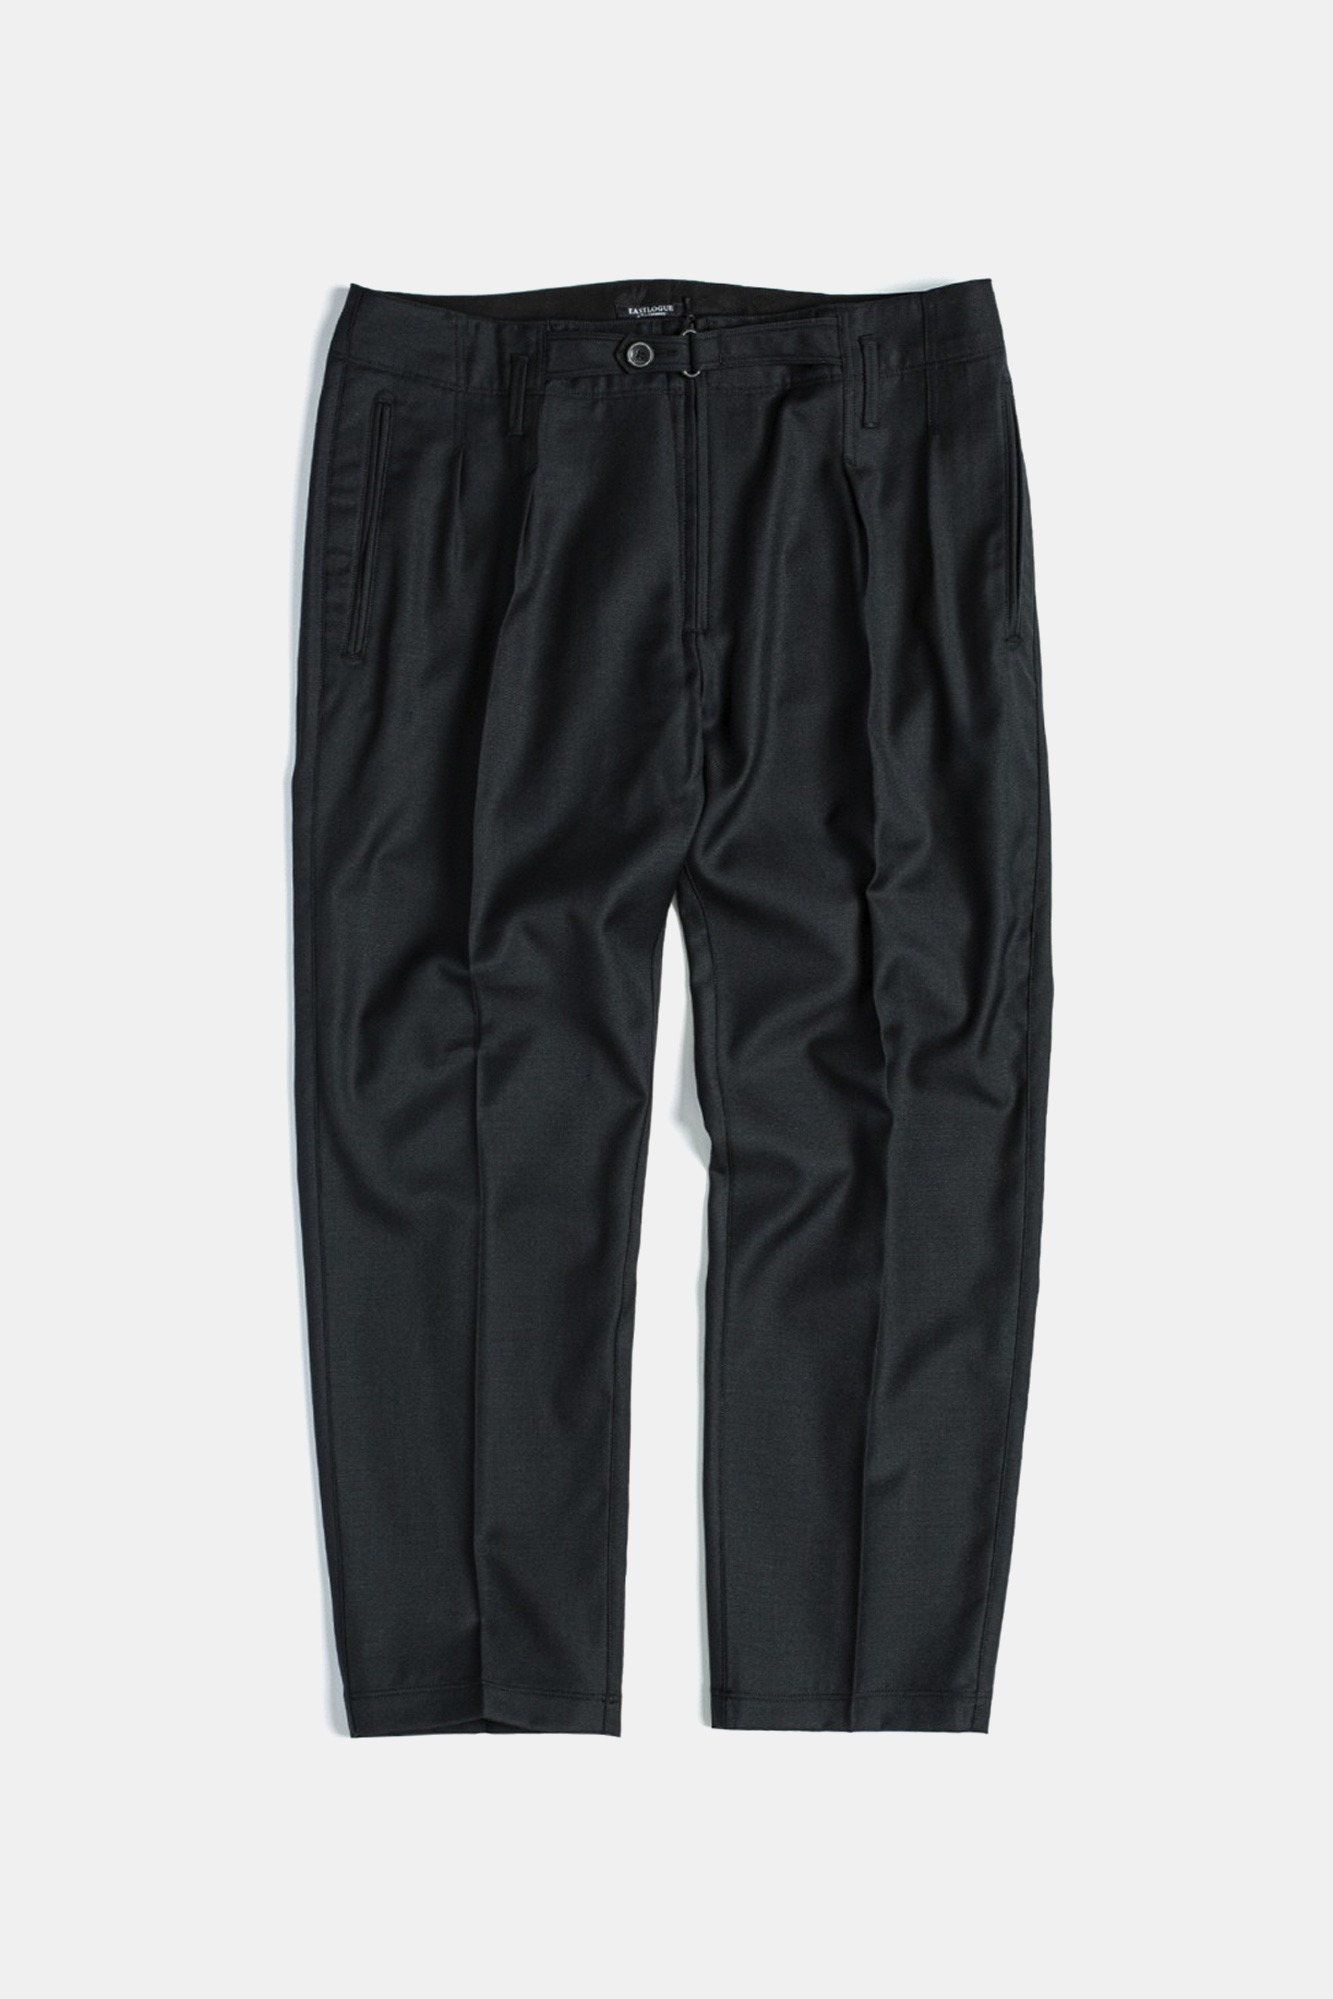 "EASTLOGUE Explorer Pants ""Black Wool"""